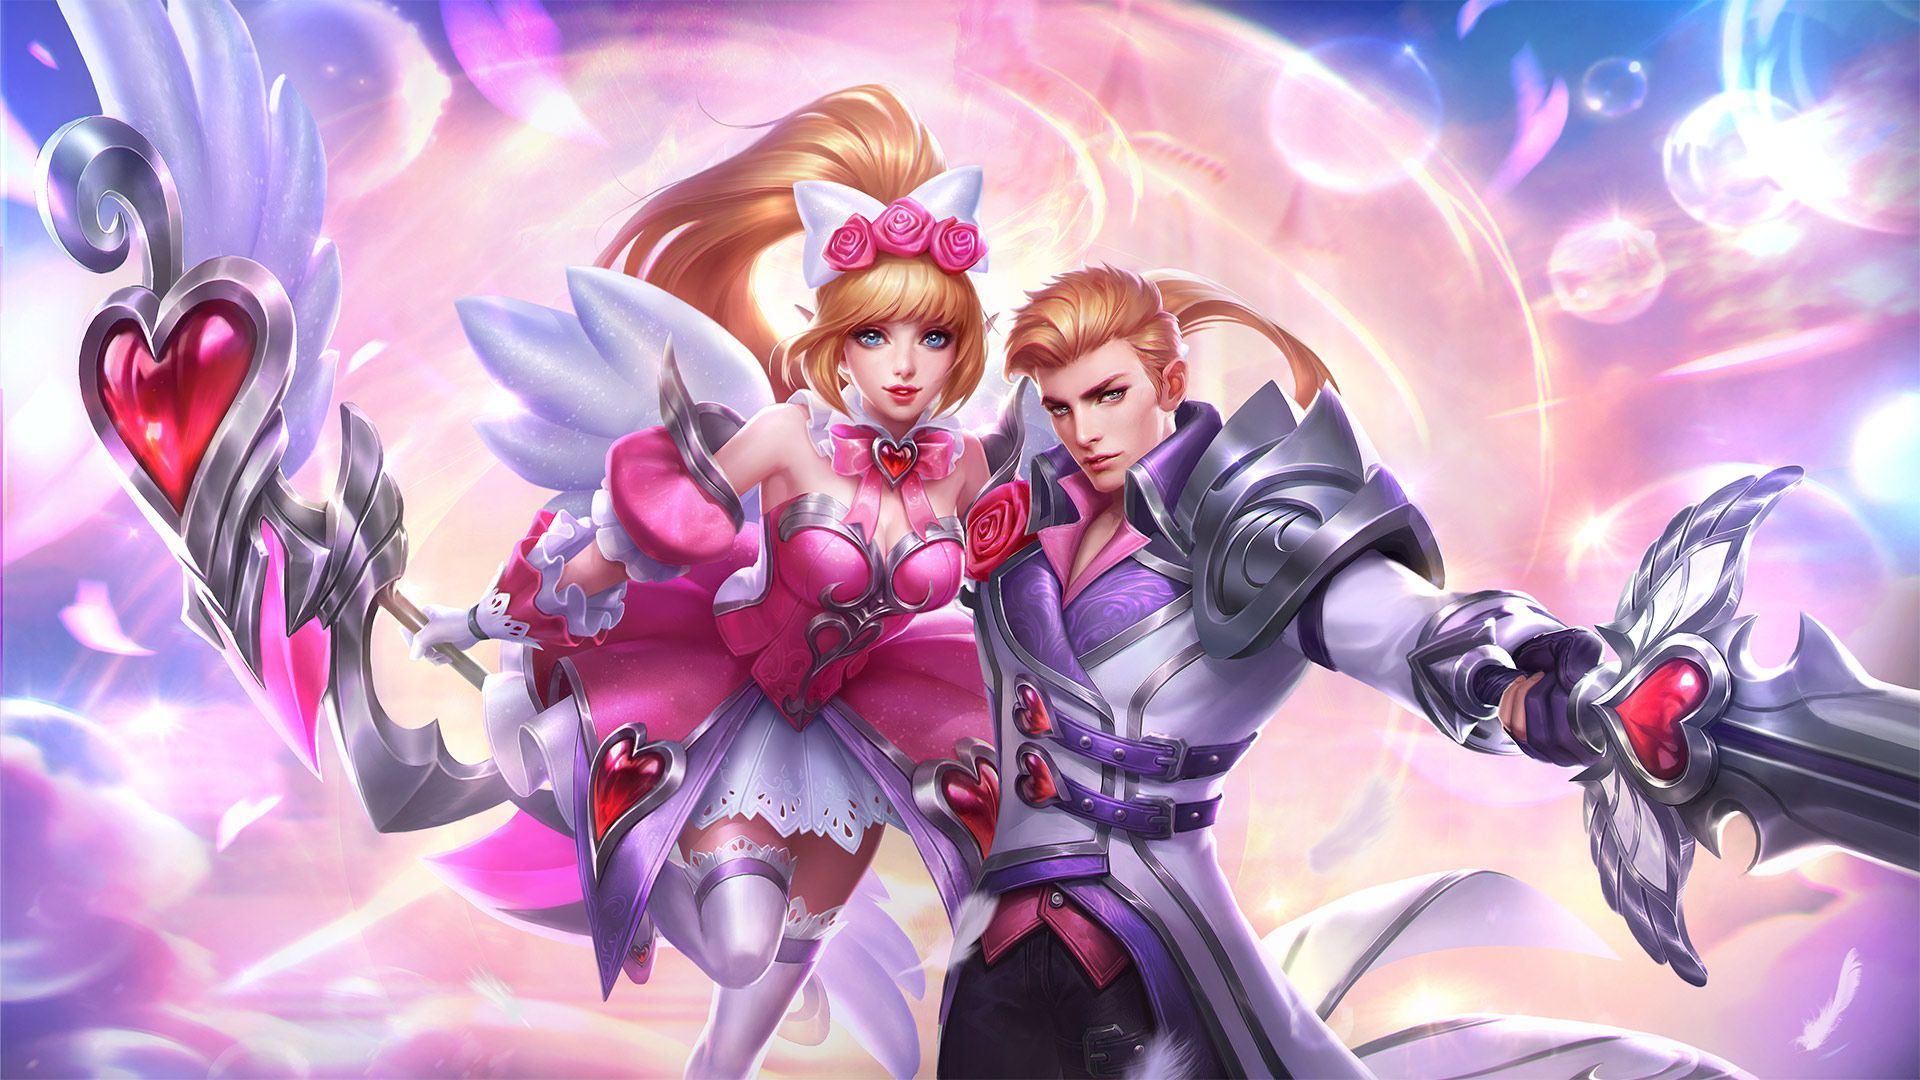 Pin on Alucard mobile legends